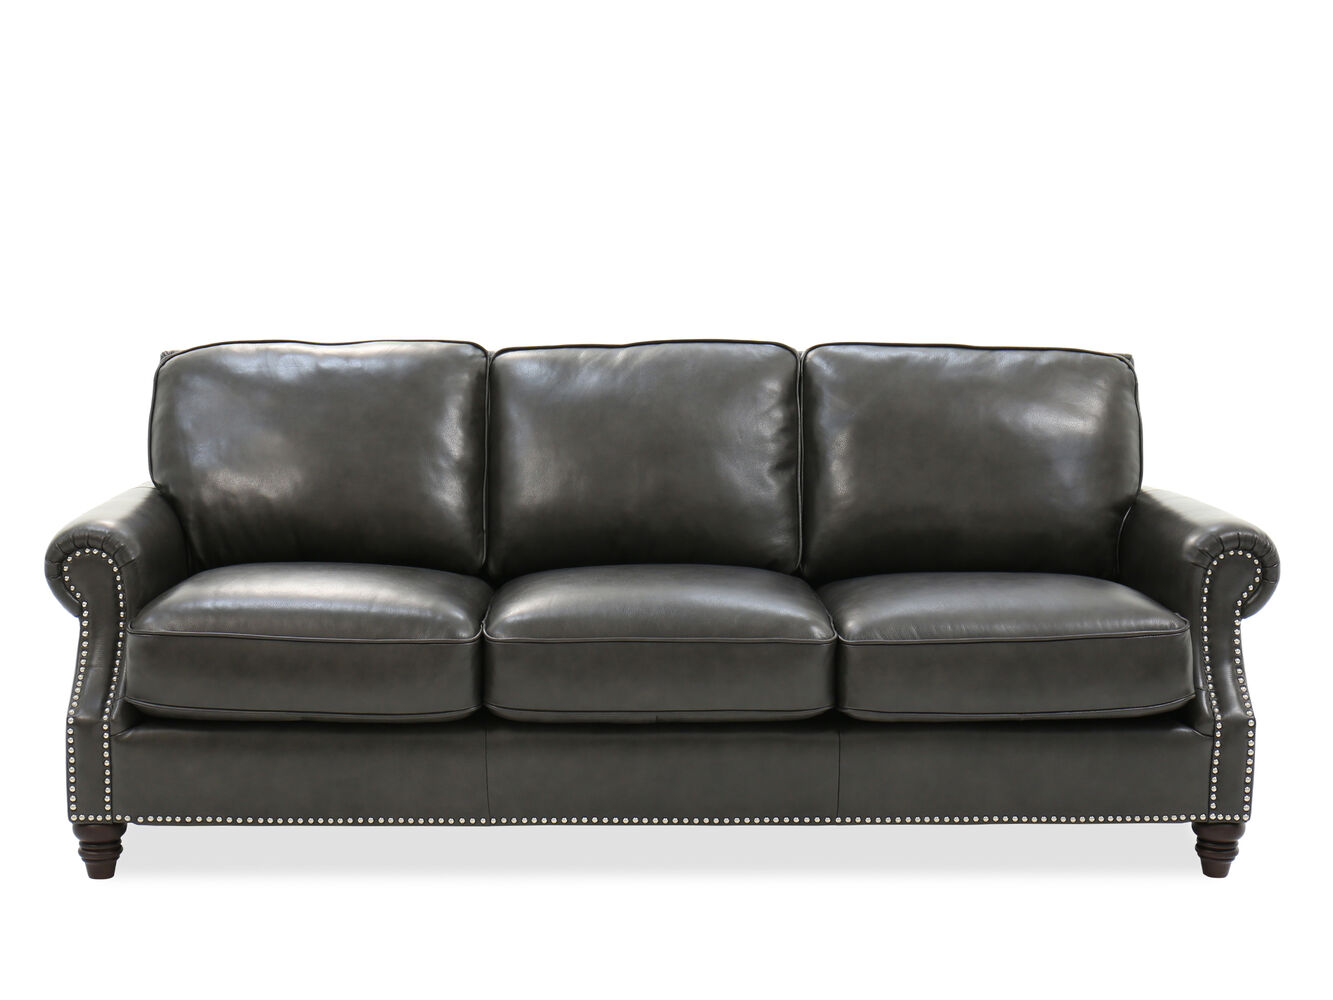 Boulevard Cityscape Sofa. Boulevard Cityscape Sofa   Mathis Brothers Furniture